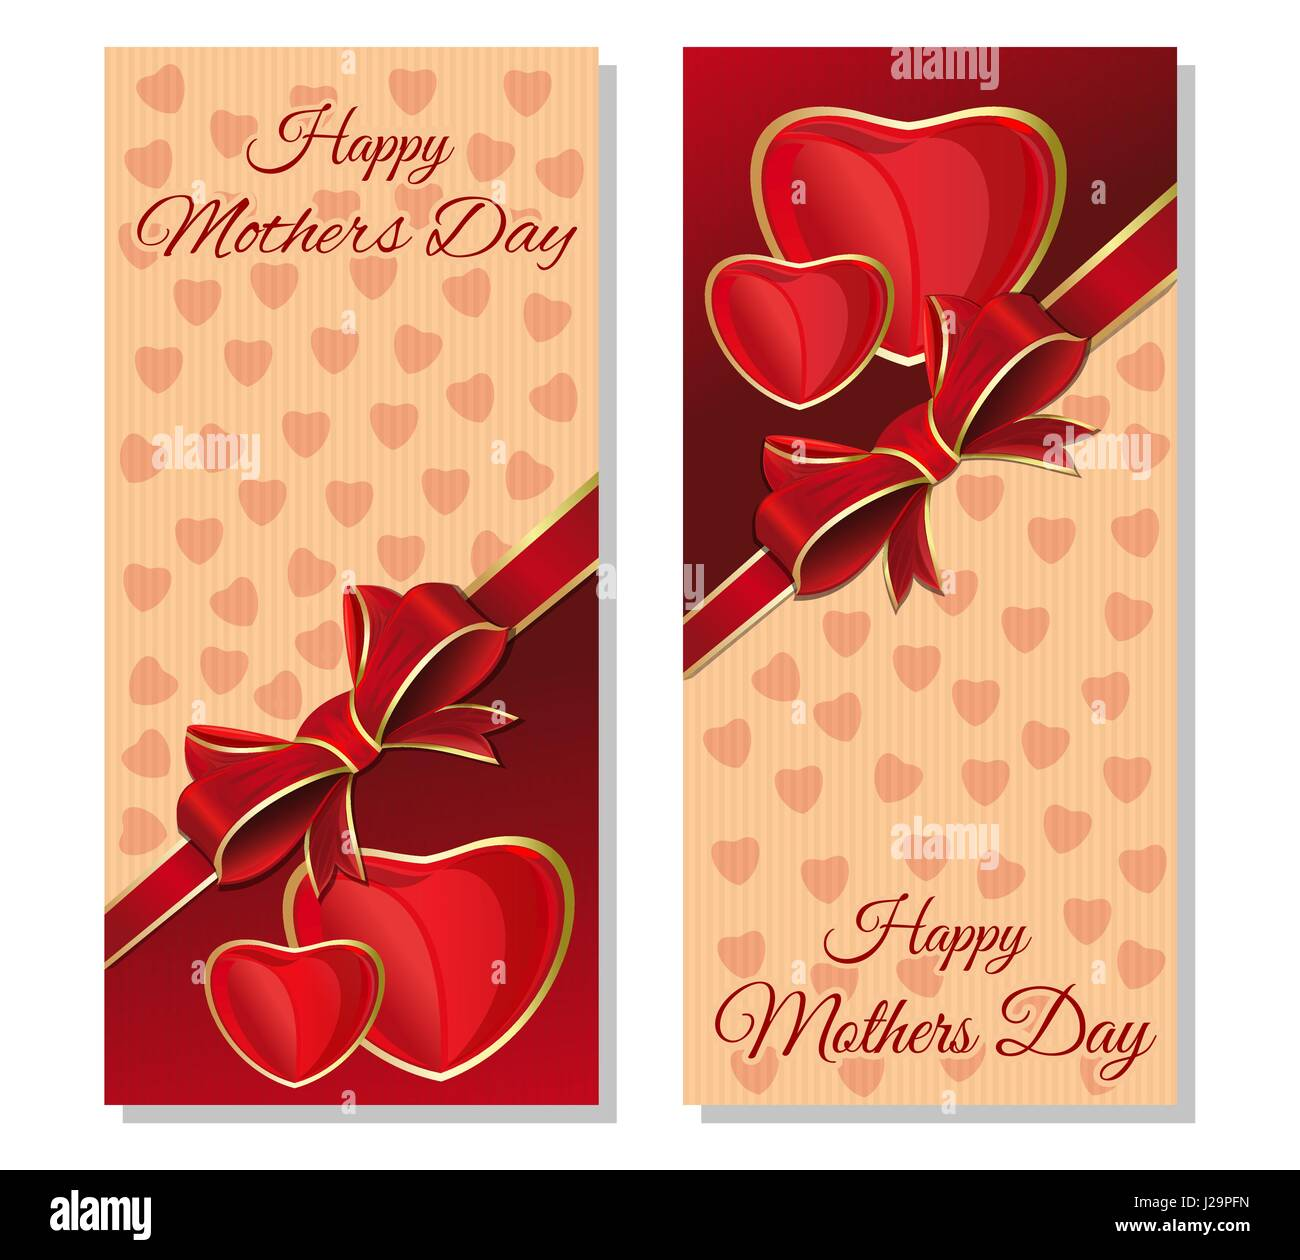 Happy mothers day greeting cards set festive red and beige stock happy mothers day greeting cards set festive red and beige background with design elements for mothers day vector flyer template m4hsunfo